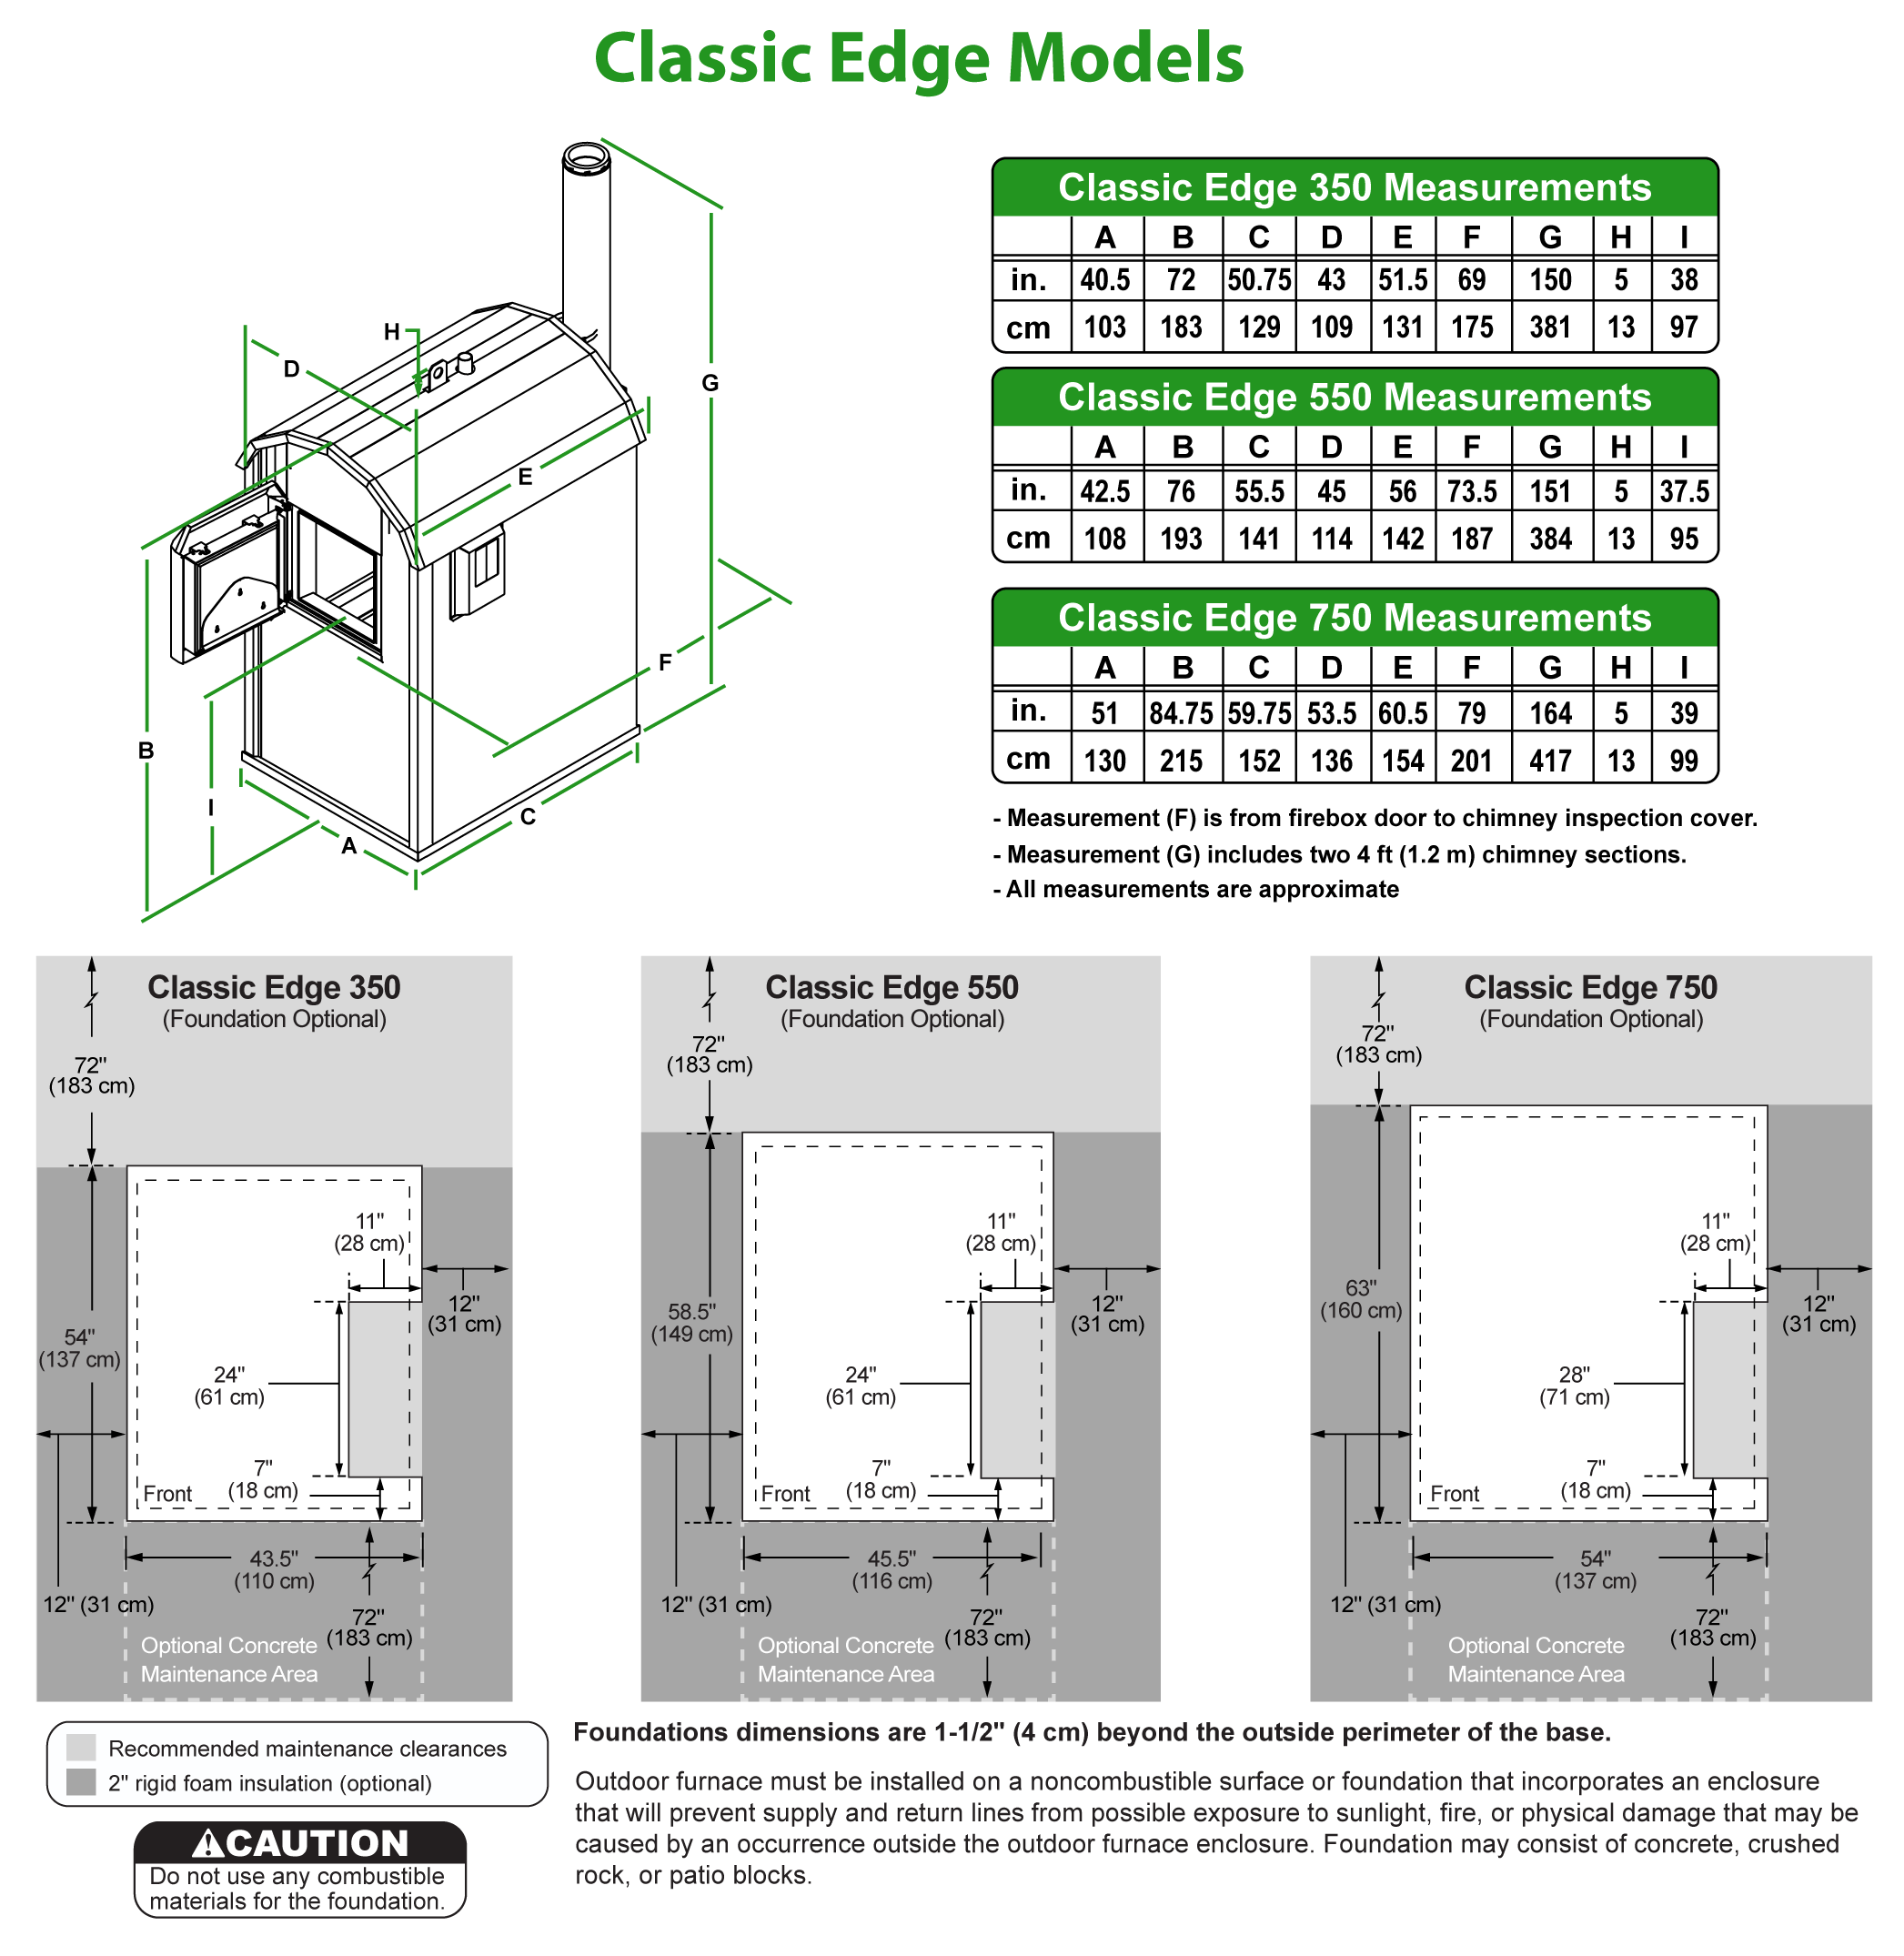 Wiring Diagram 350 Residential Wood Stove 41 Images Old Furnace Classic Edge 550 750 Measurements At